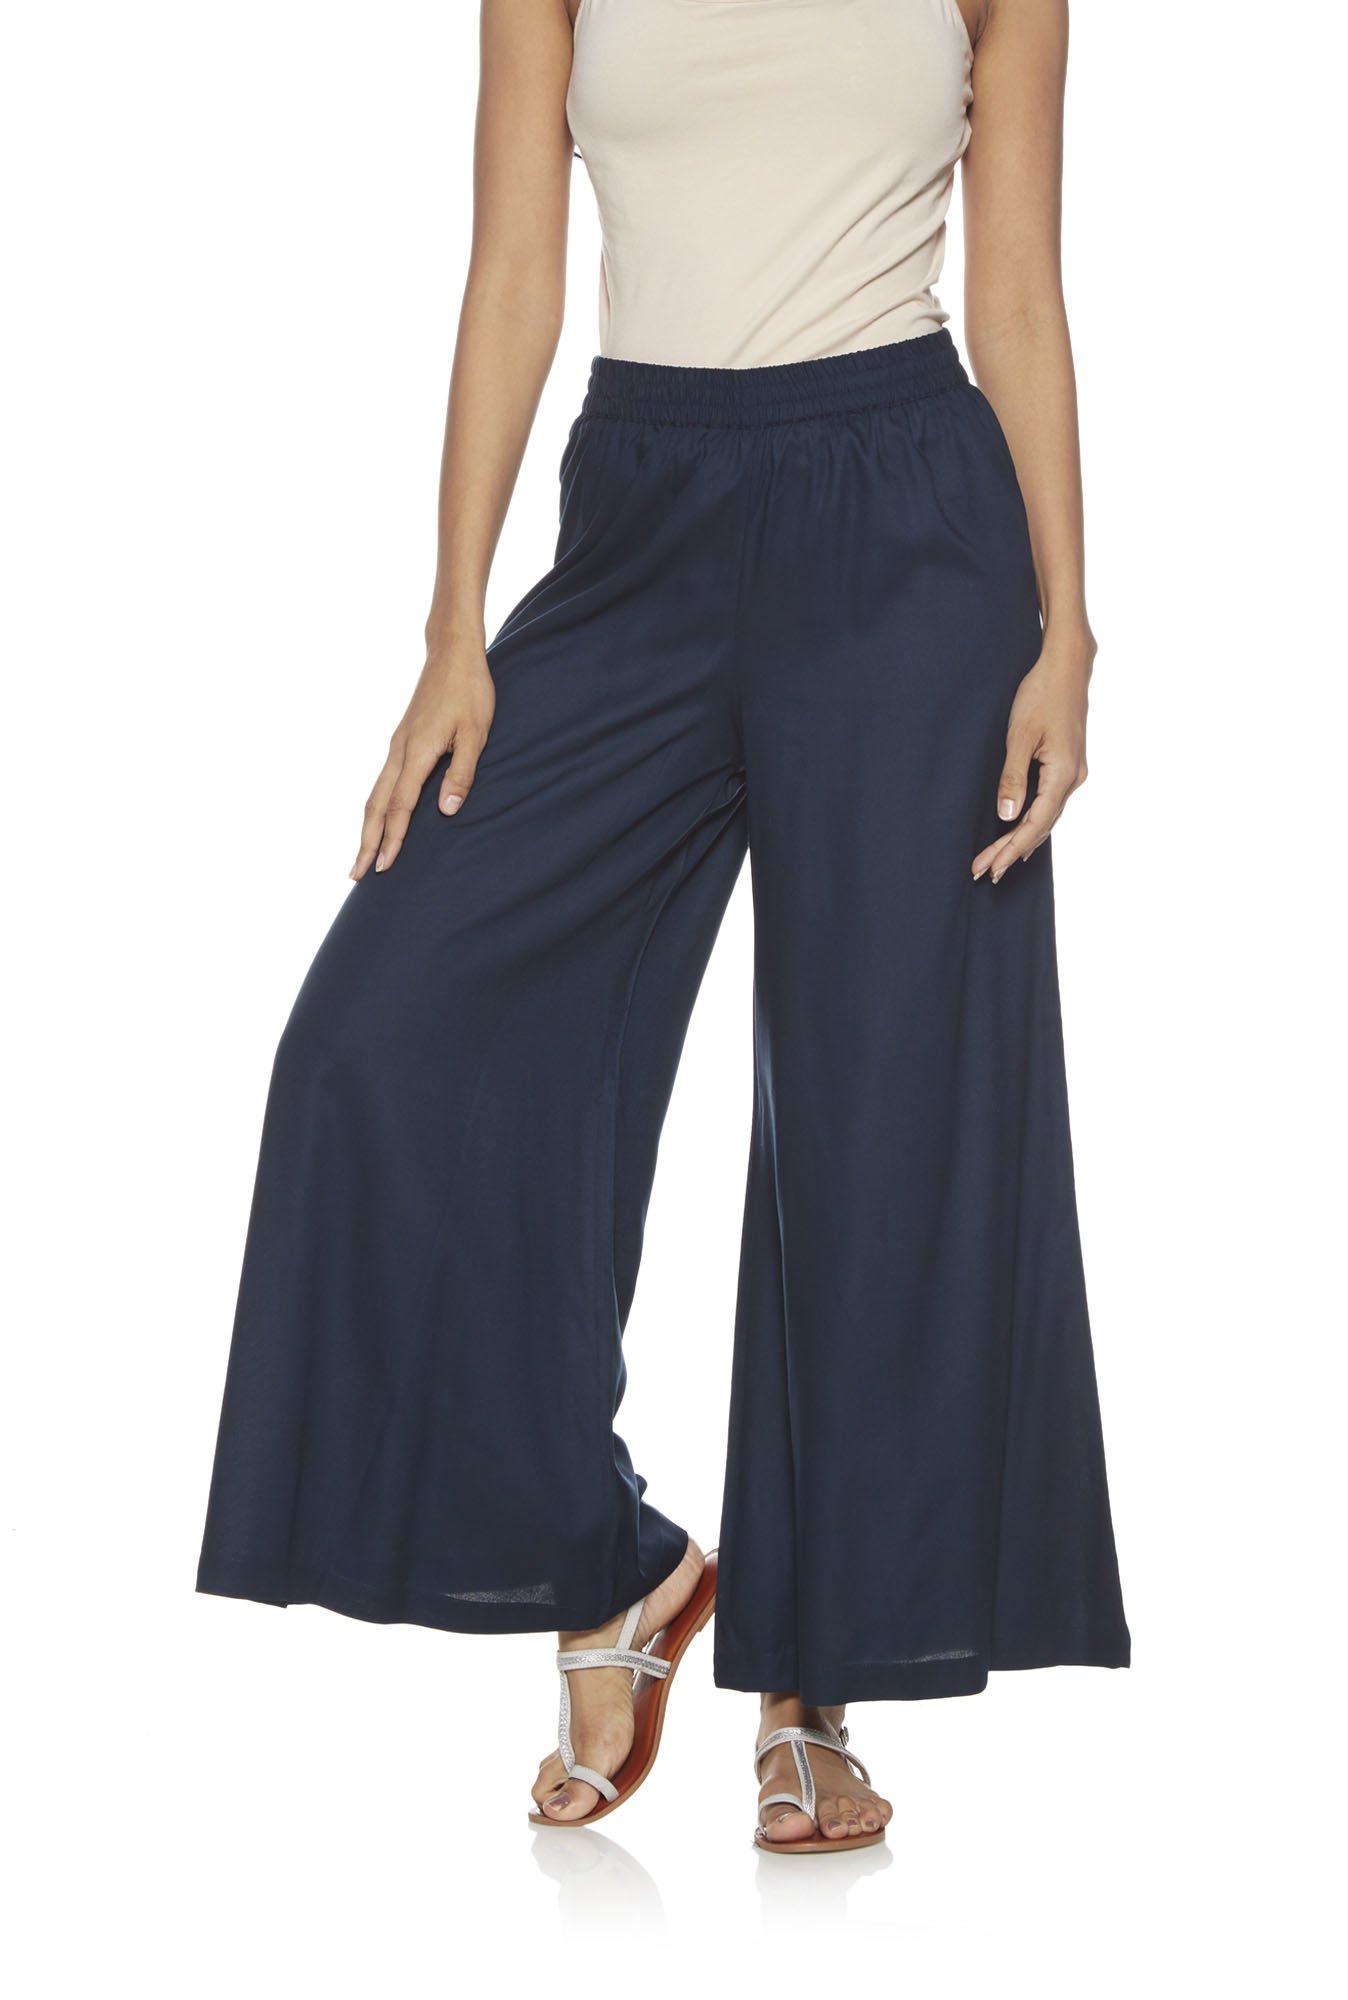 Utsa by Westside Navy Solid Palazzos